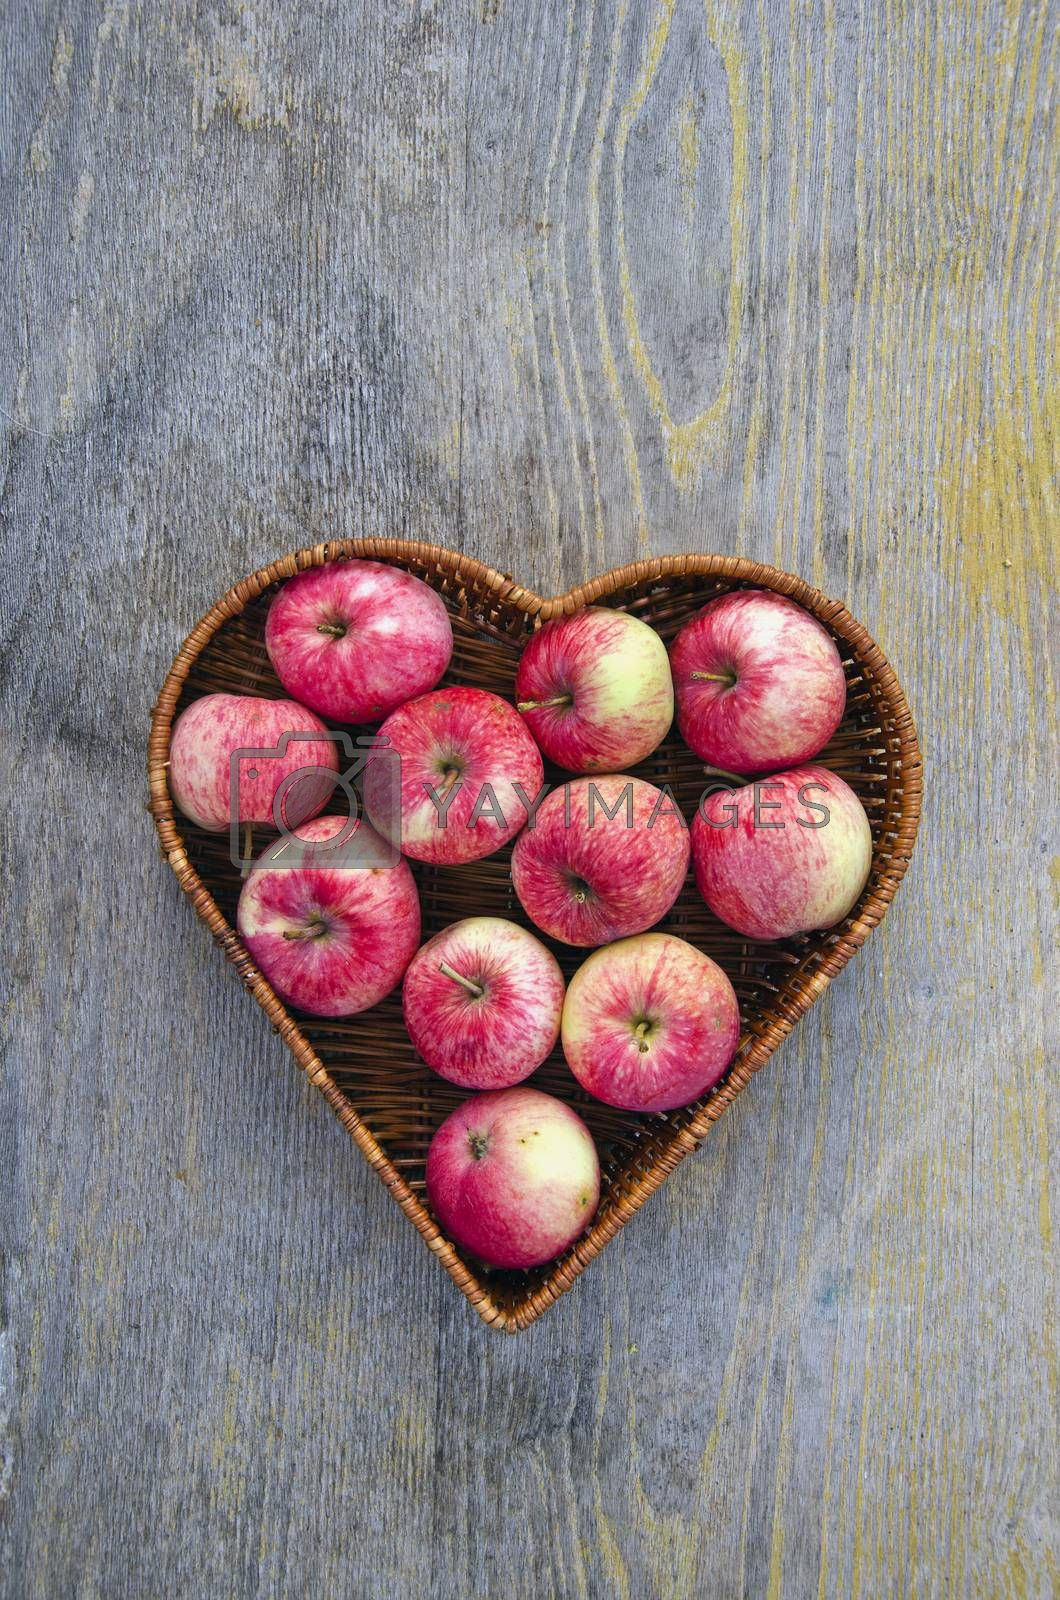 Royalty free image of red summer fresh apple in heart form basket by alis_photo